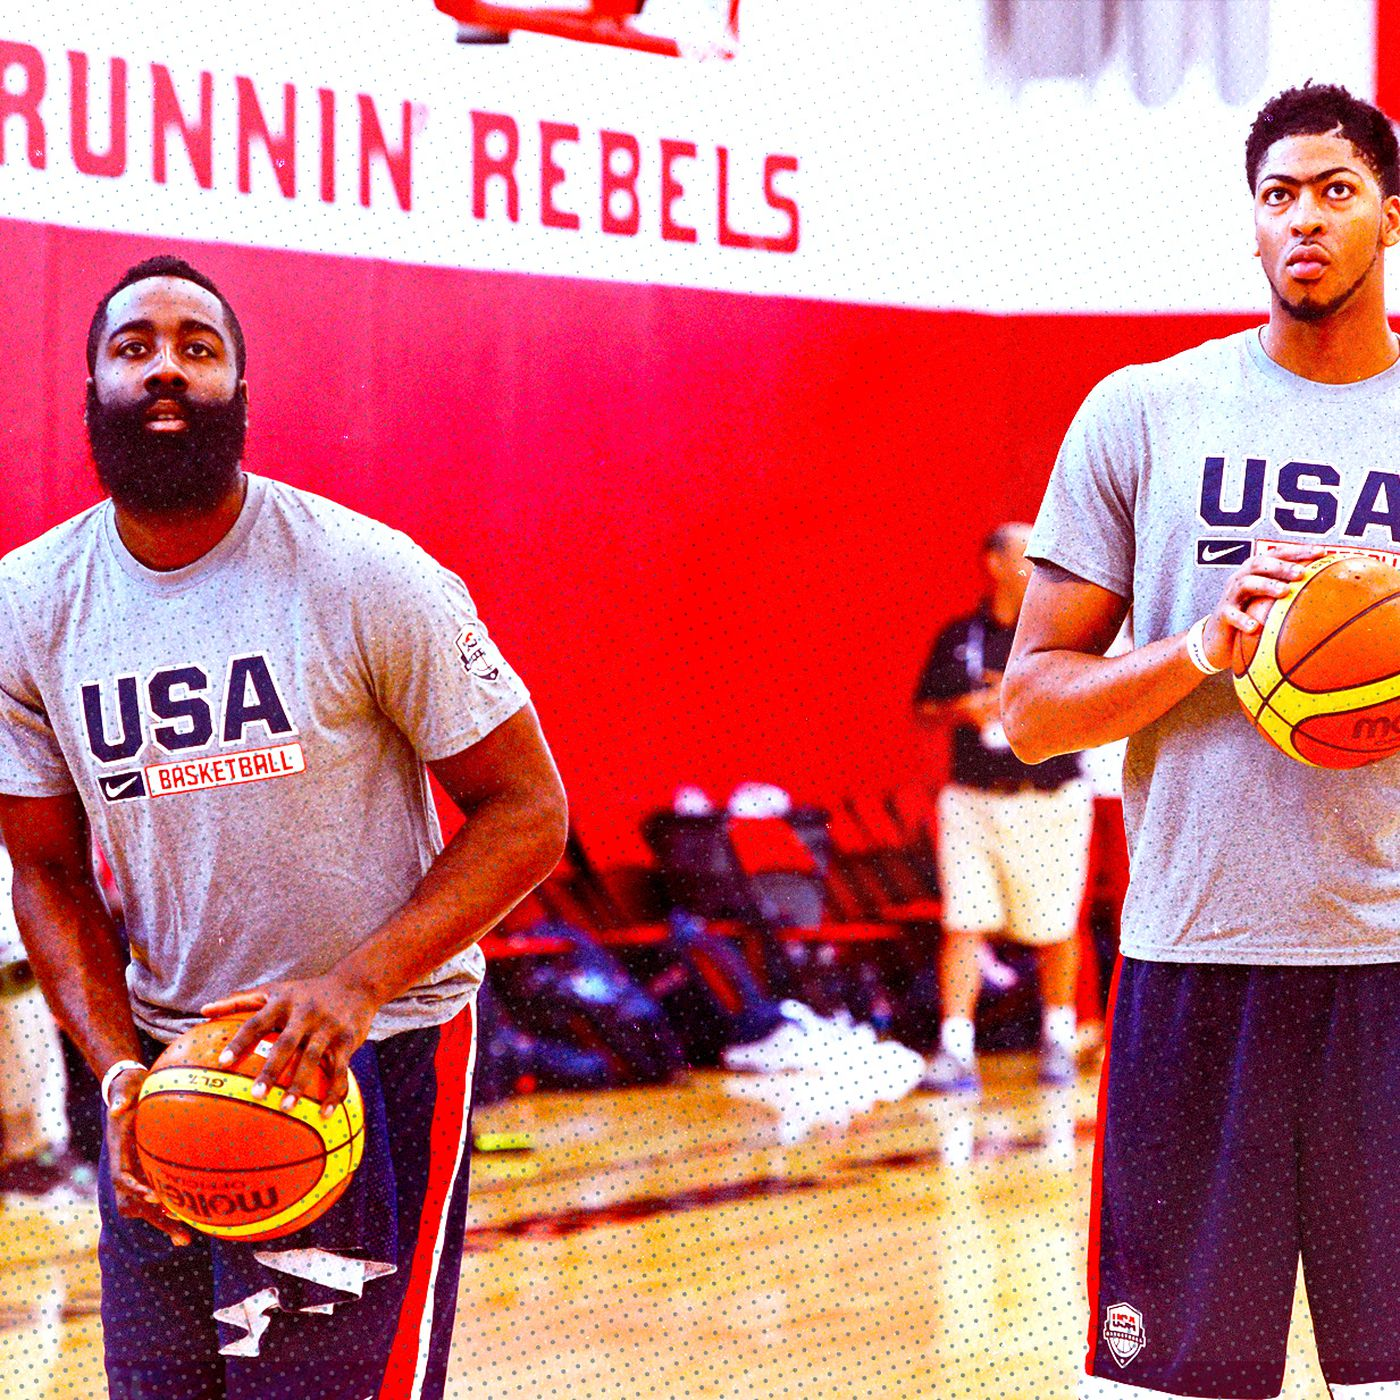 Team USA's 2019 FIBA World Cup roster won't feature many